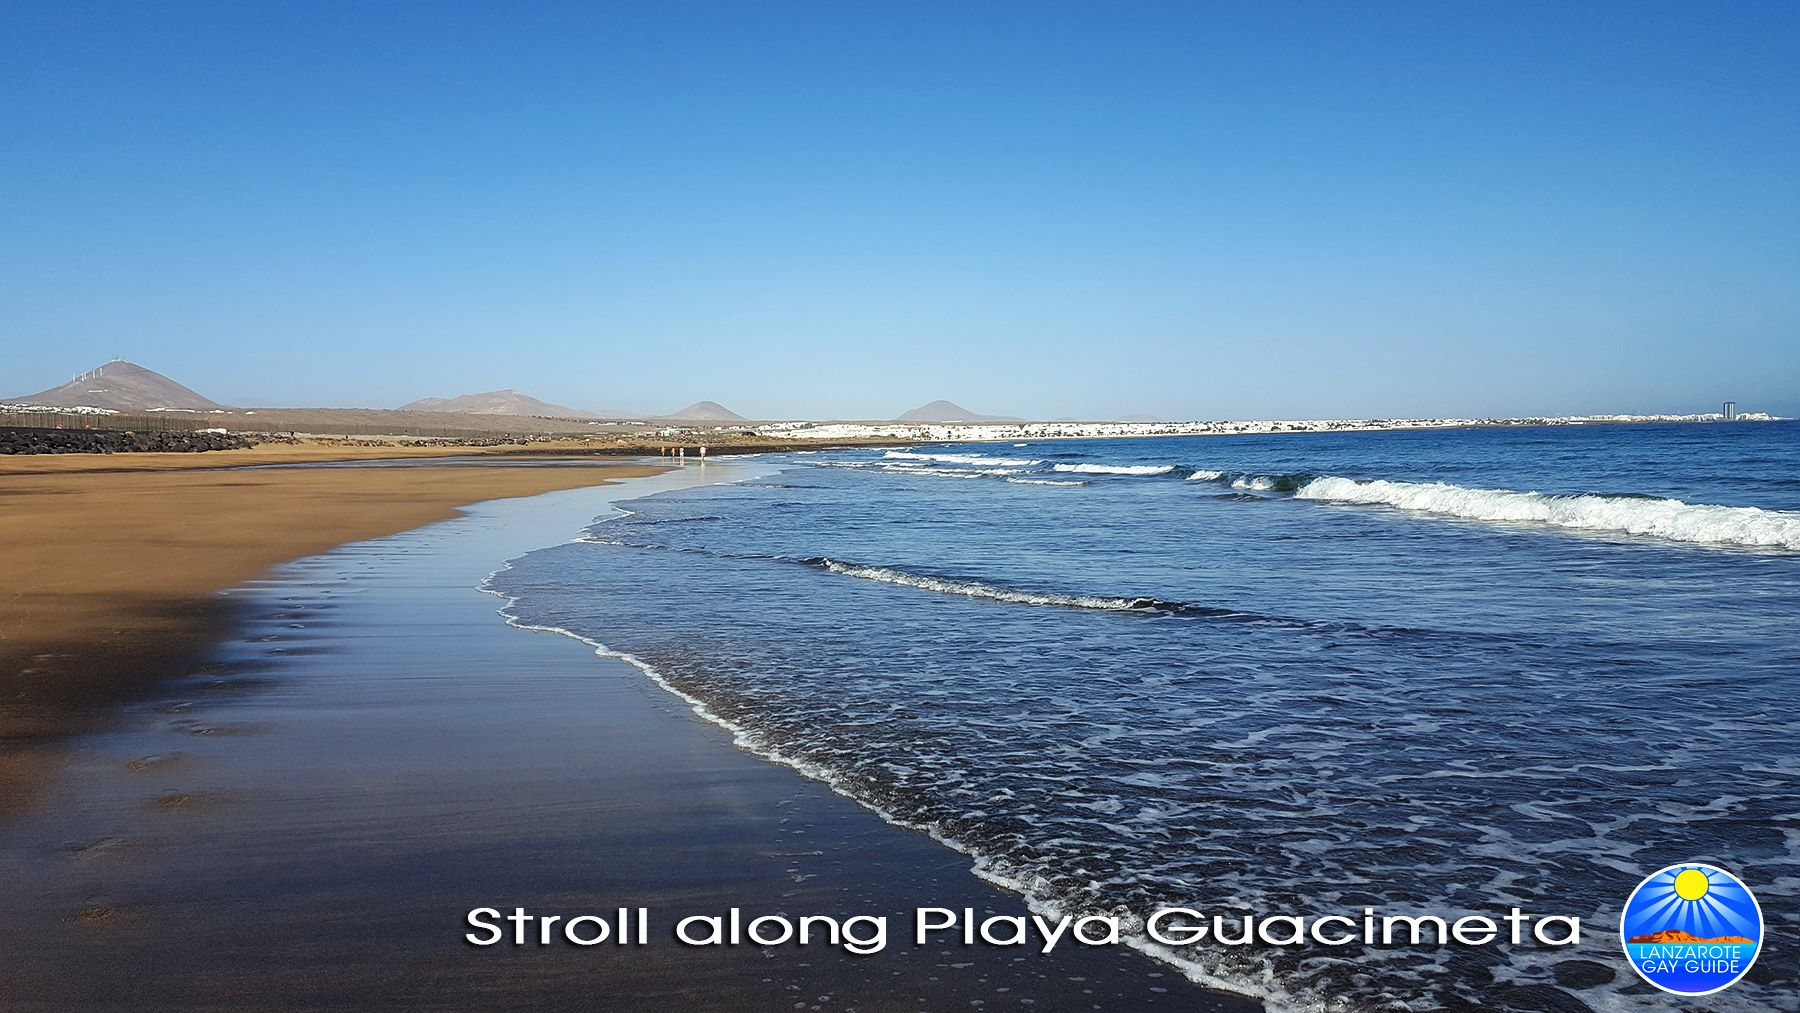 from Leland gay beaches lanzarote